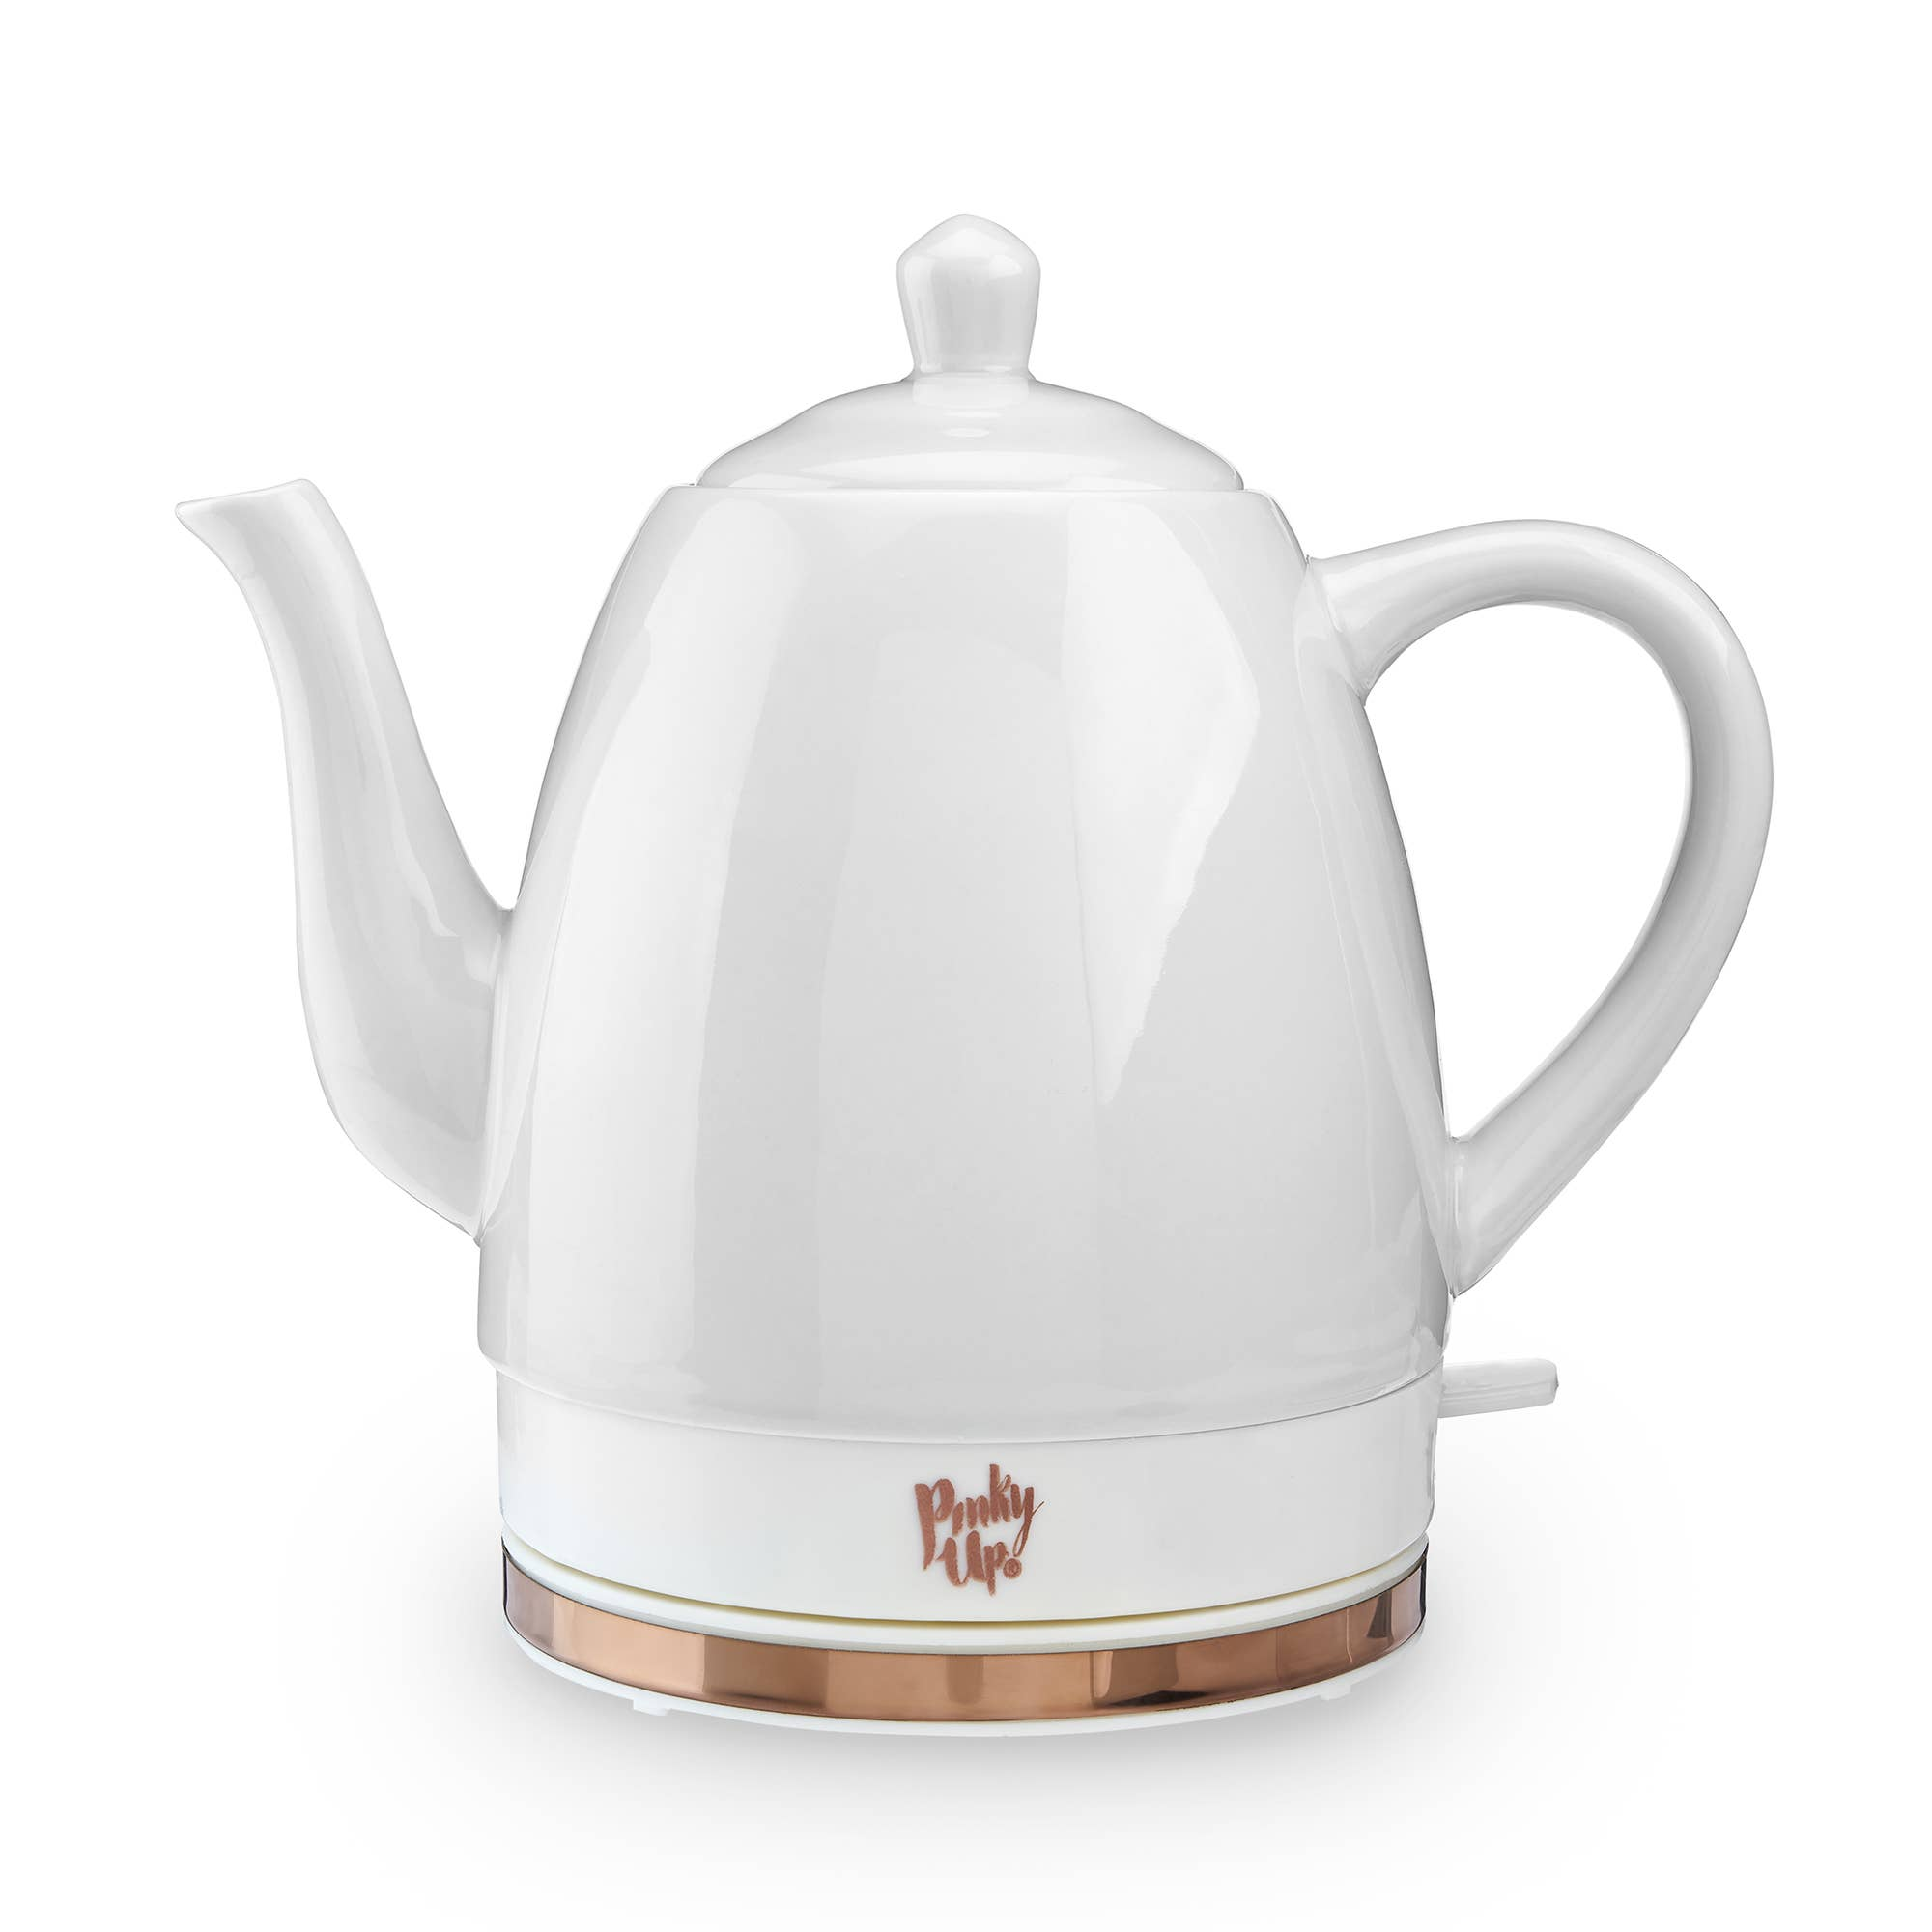 Noelle™ Grey Ceramic Electric Tea Kettle by Pinky Up®